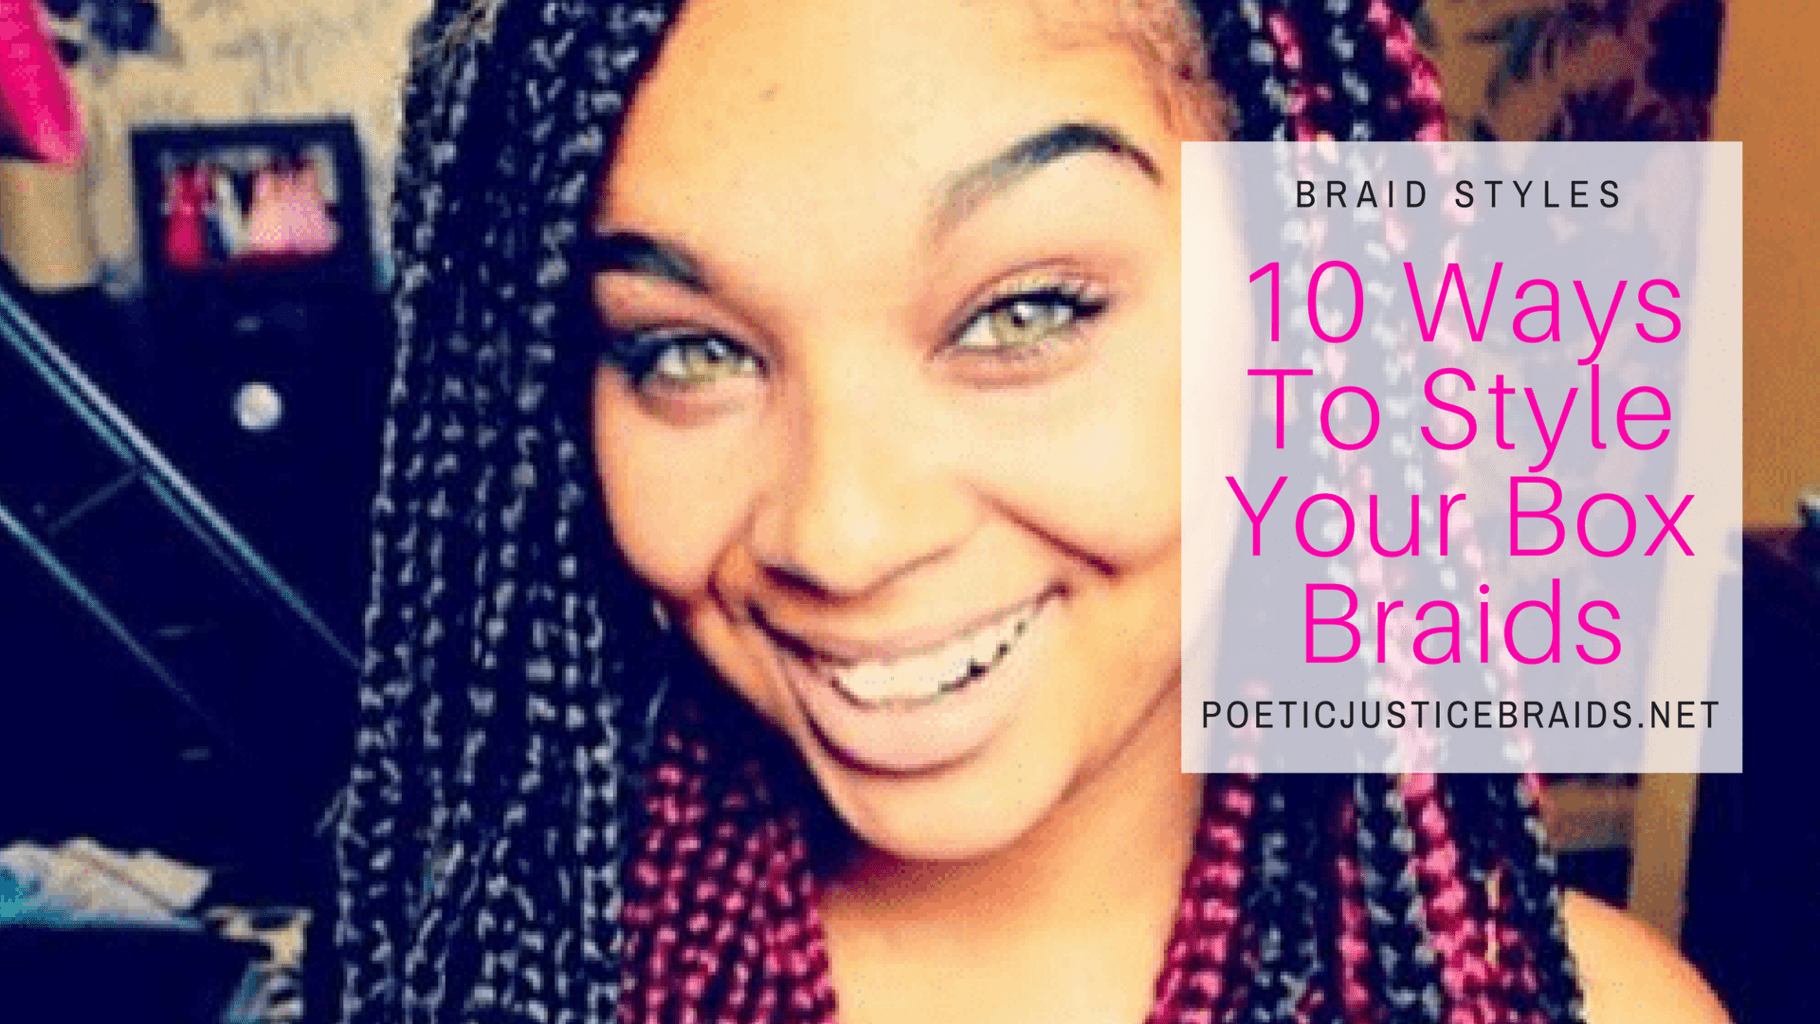 Hairstyles for Box Braids  10 Ways to Style in 2015